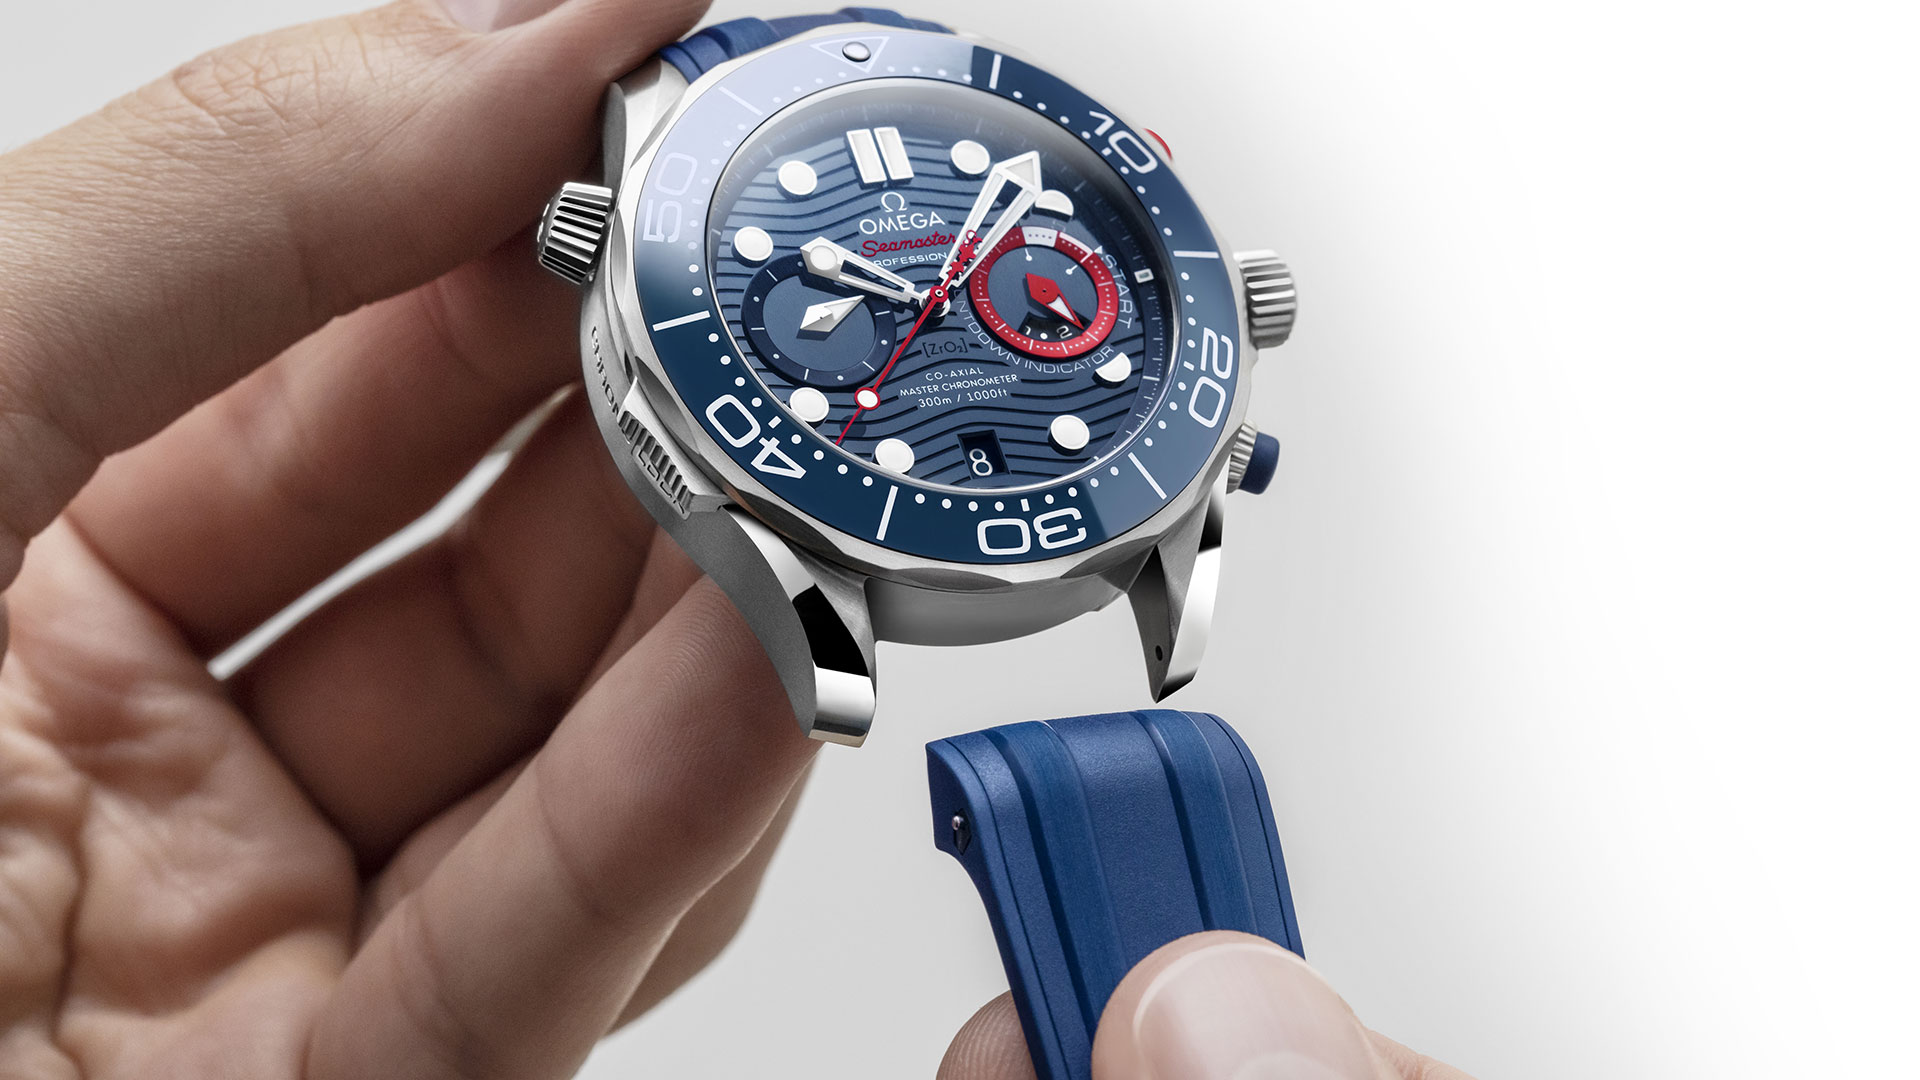 omega-seamaster-diver-300m-america's-cup-chronograph